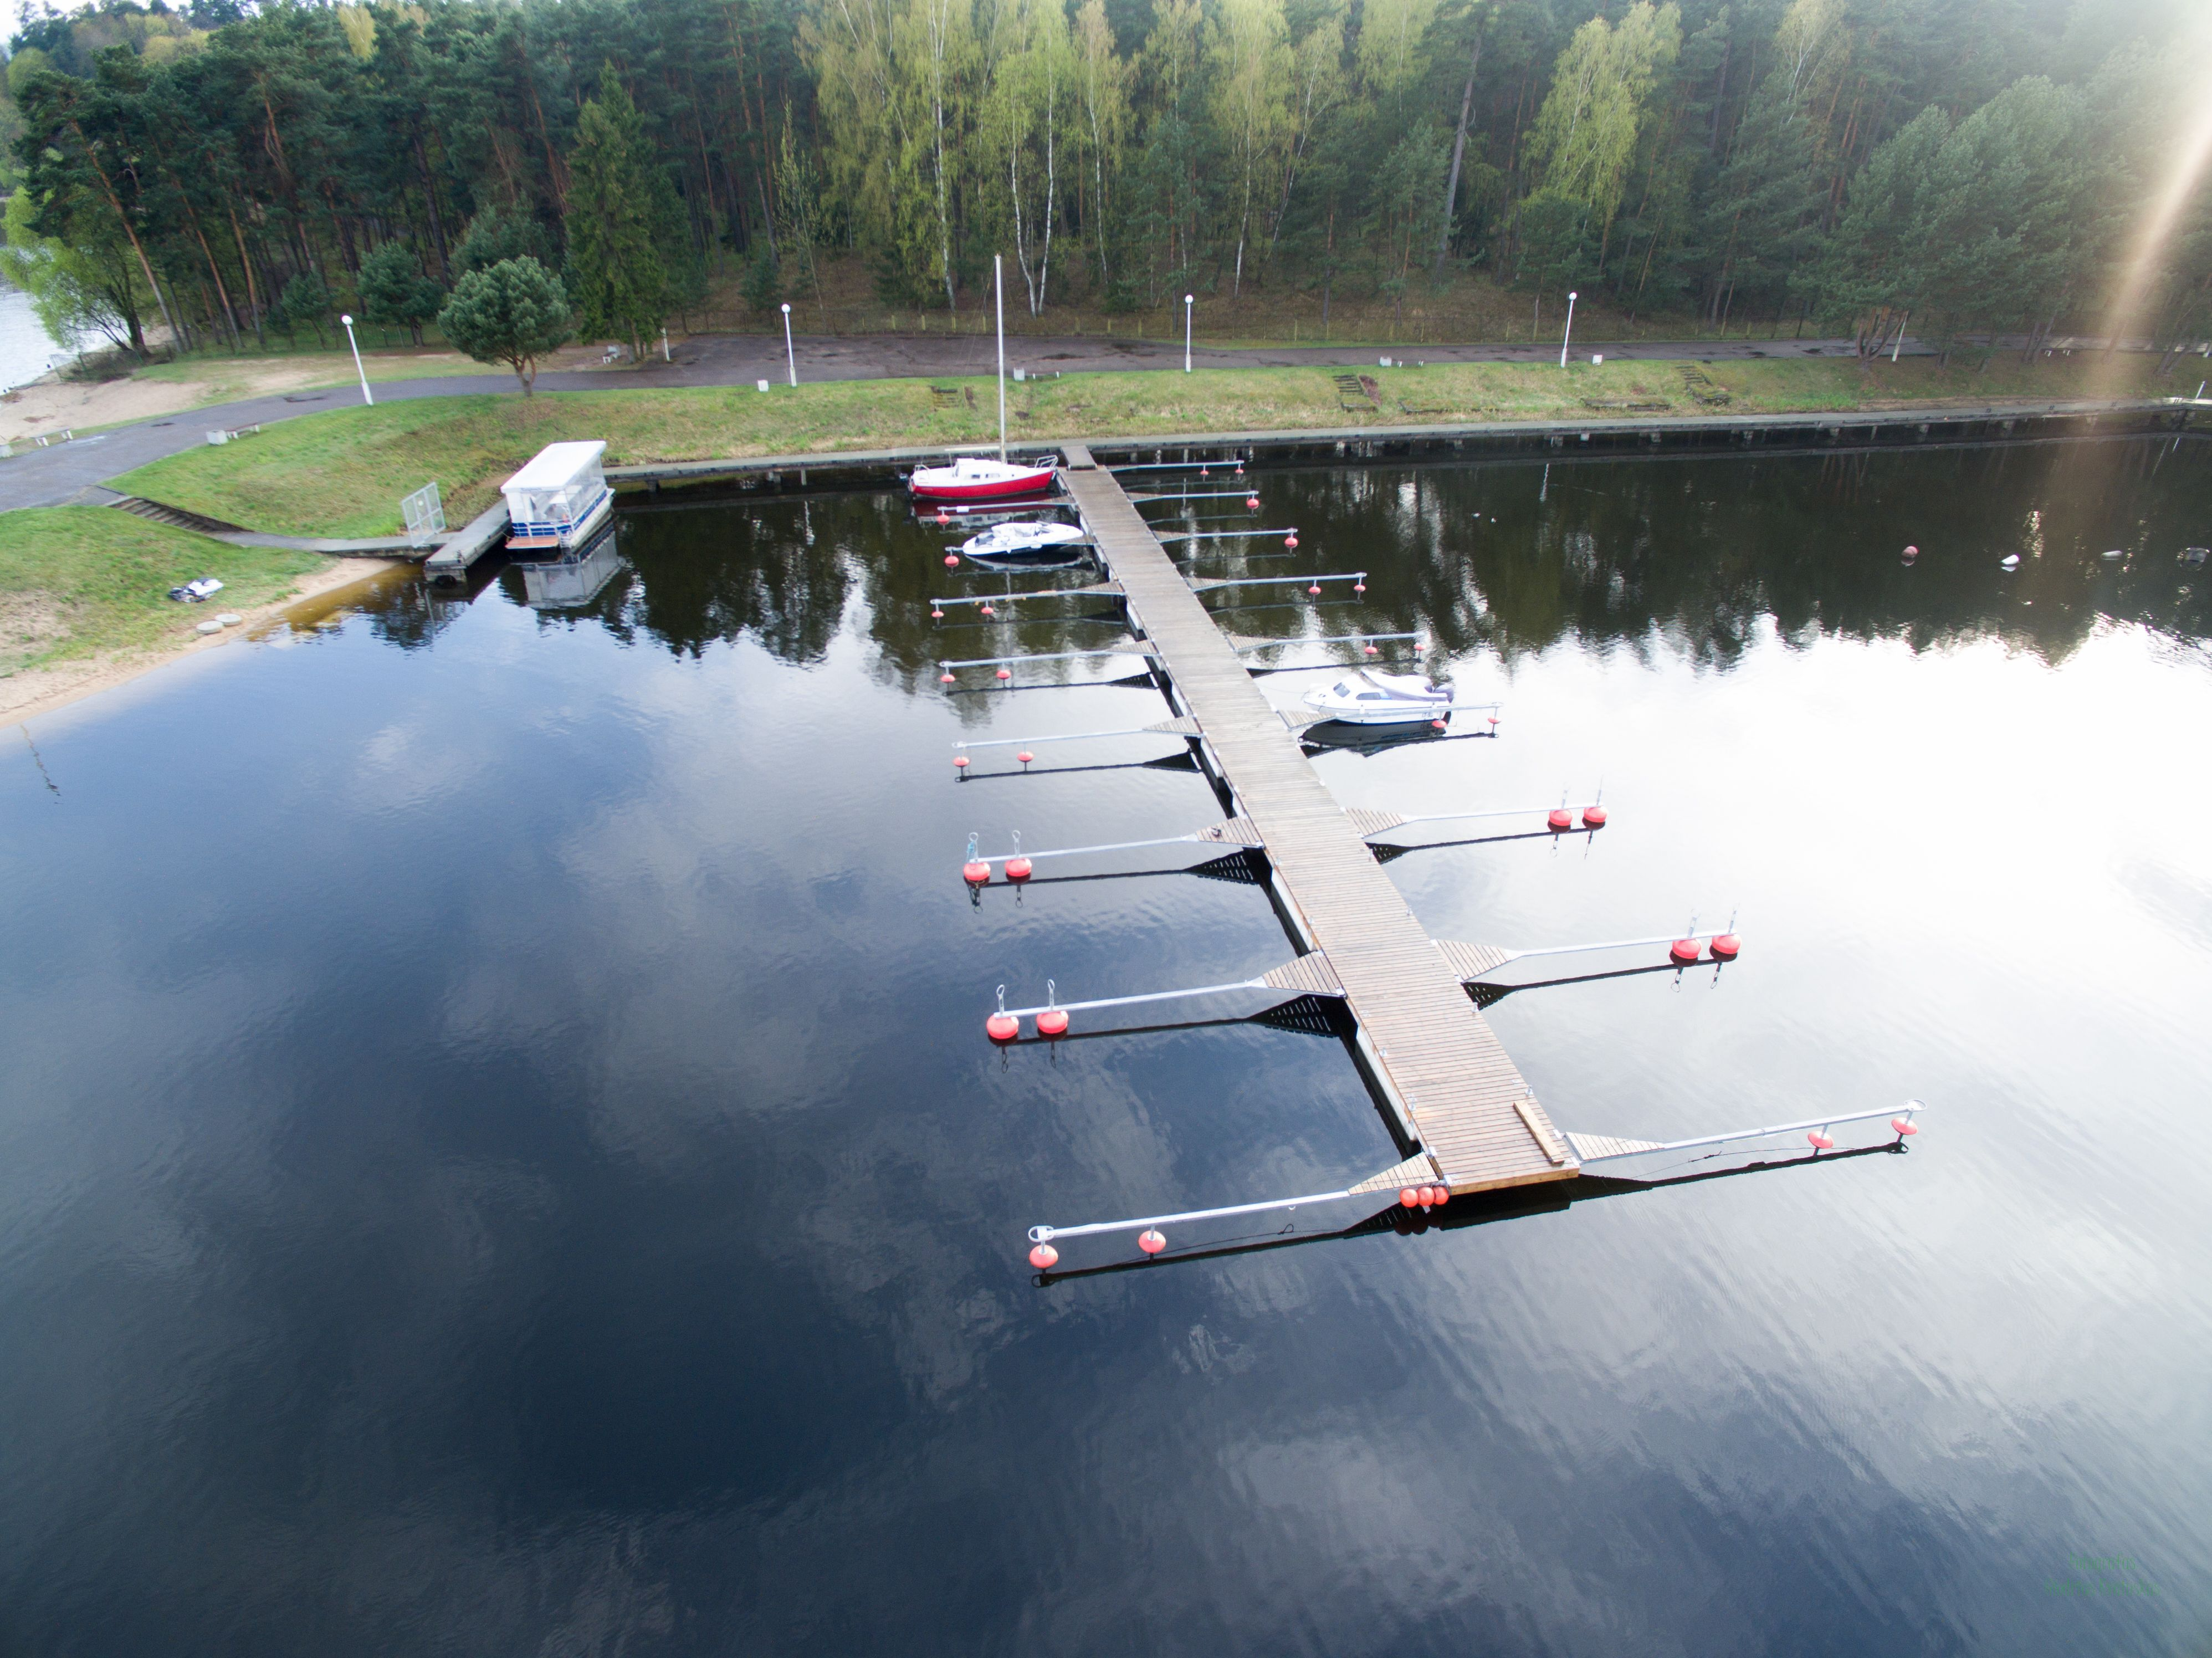 Instalations of pontoons for boats and pontoon